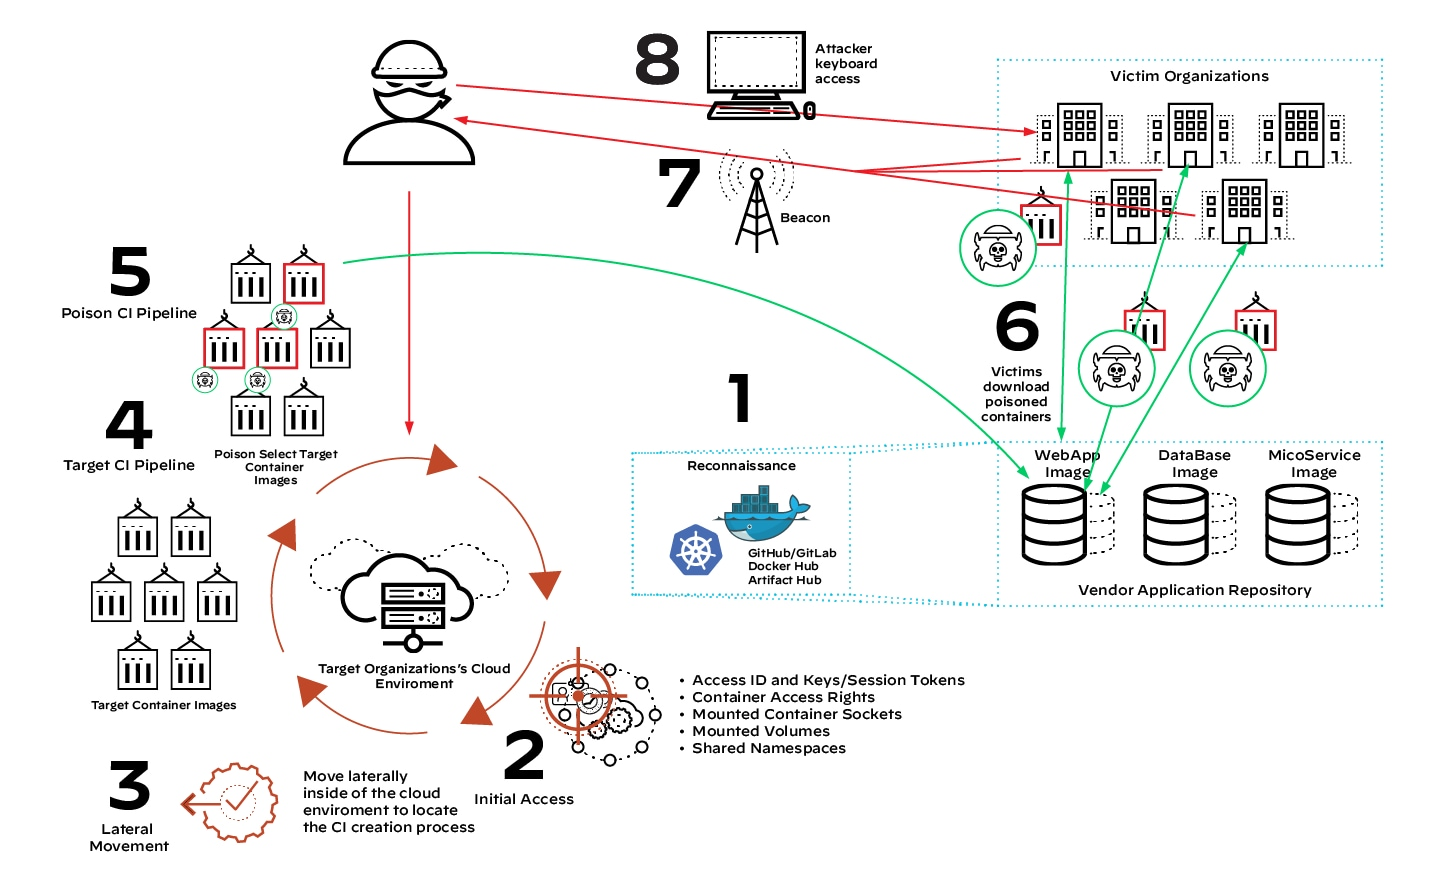 The Anatomy of an Attack Against a Cloud Supply Pipeline